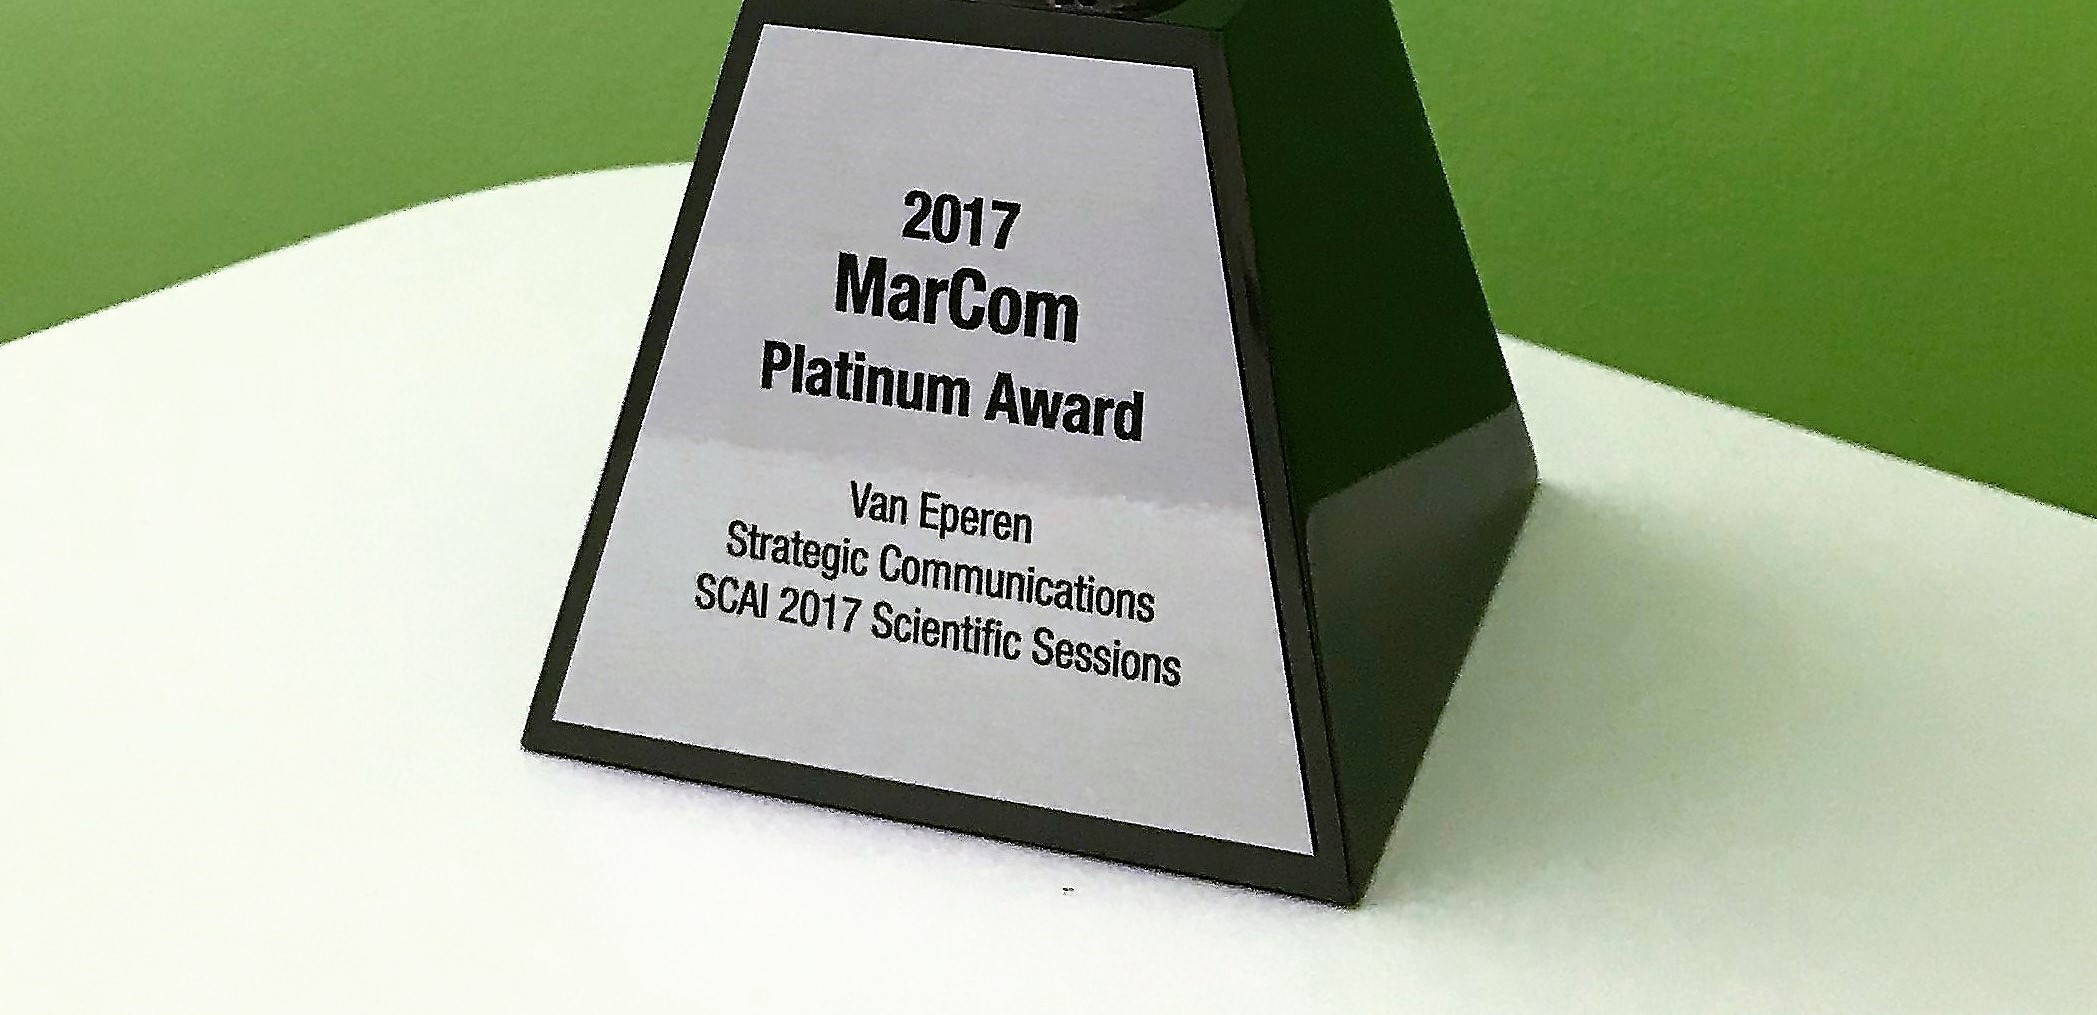 Van Eperen Honored with 2017 MarCom Platinum Award •